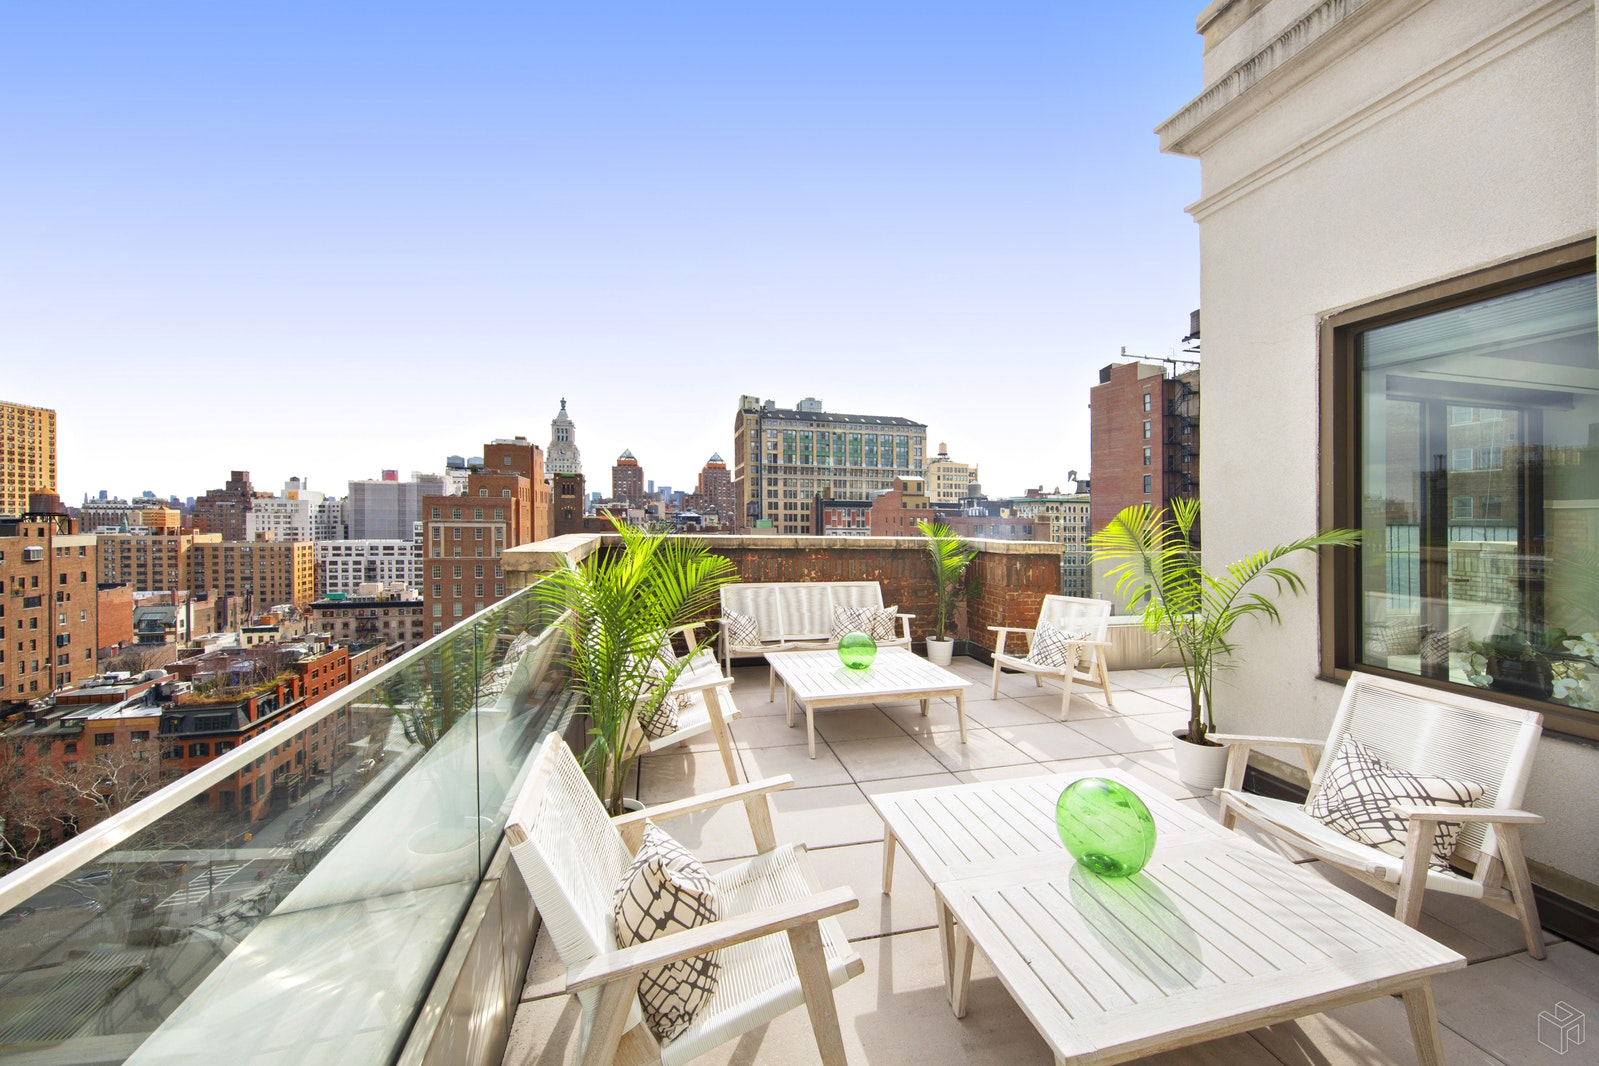 50 gramercy park north gramercy park nyc 10010 for Gramercy park for sale